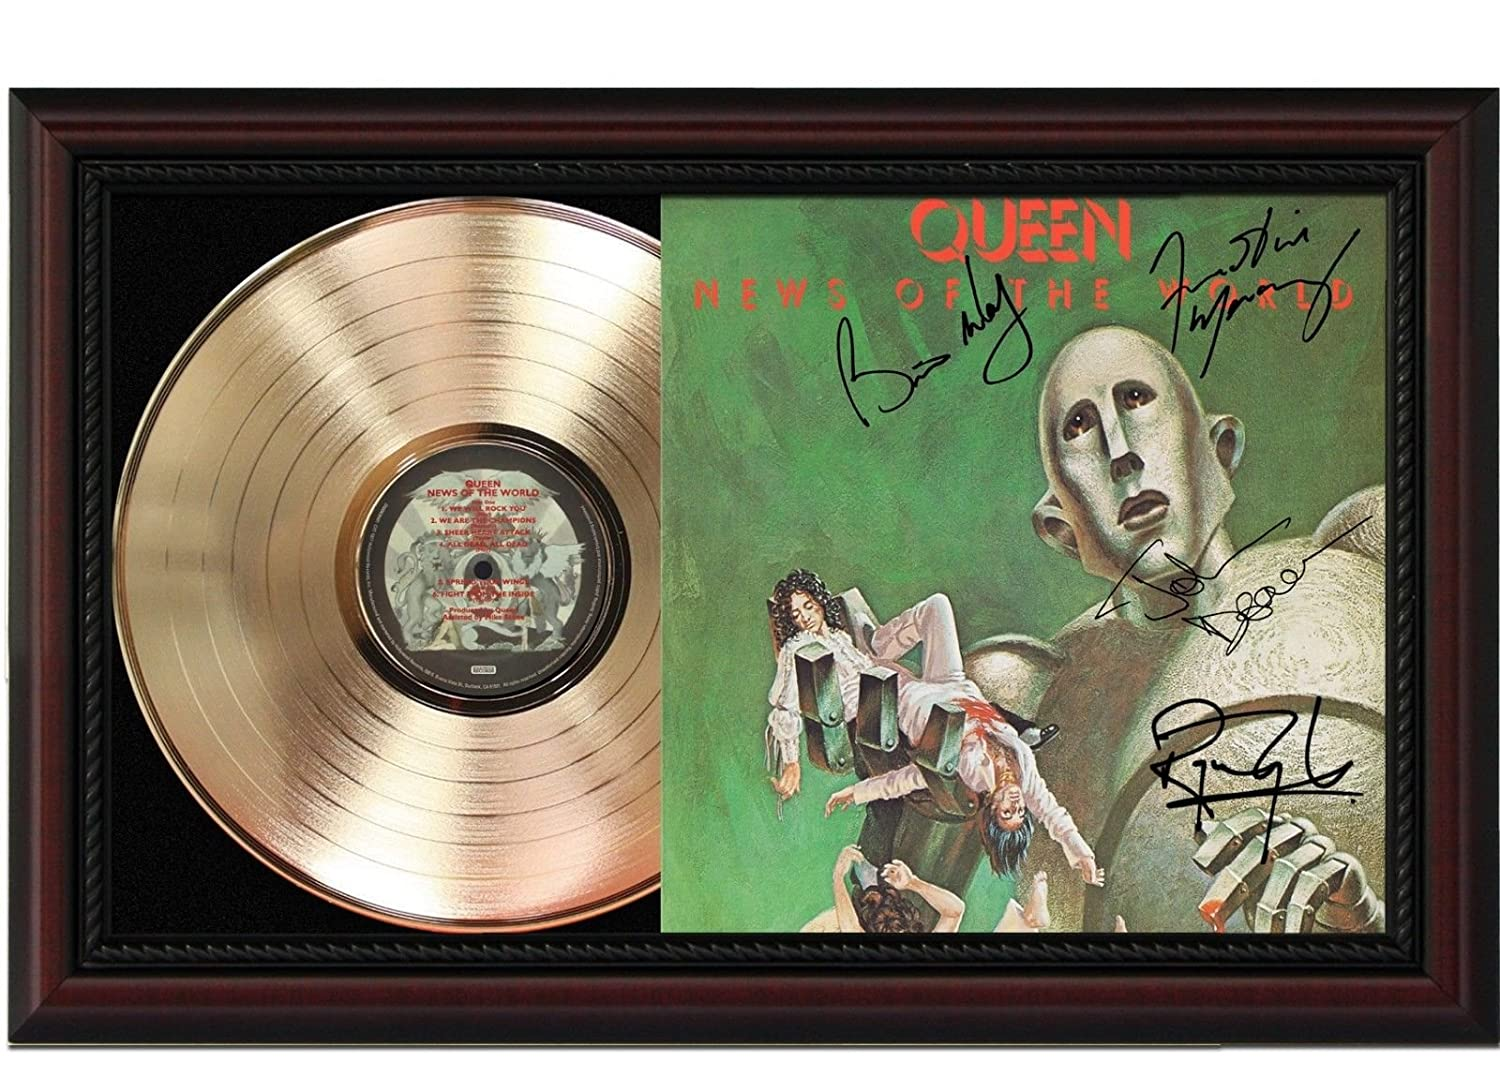 Queen News of the World Cherrywood Framed Gold Signature Display M4